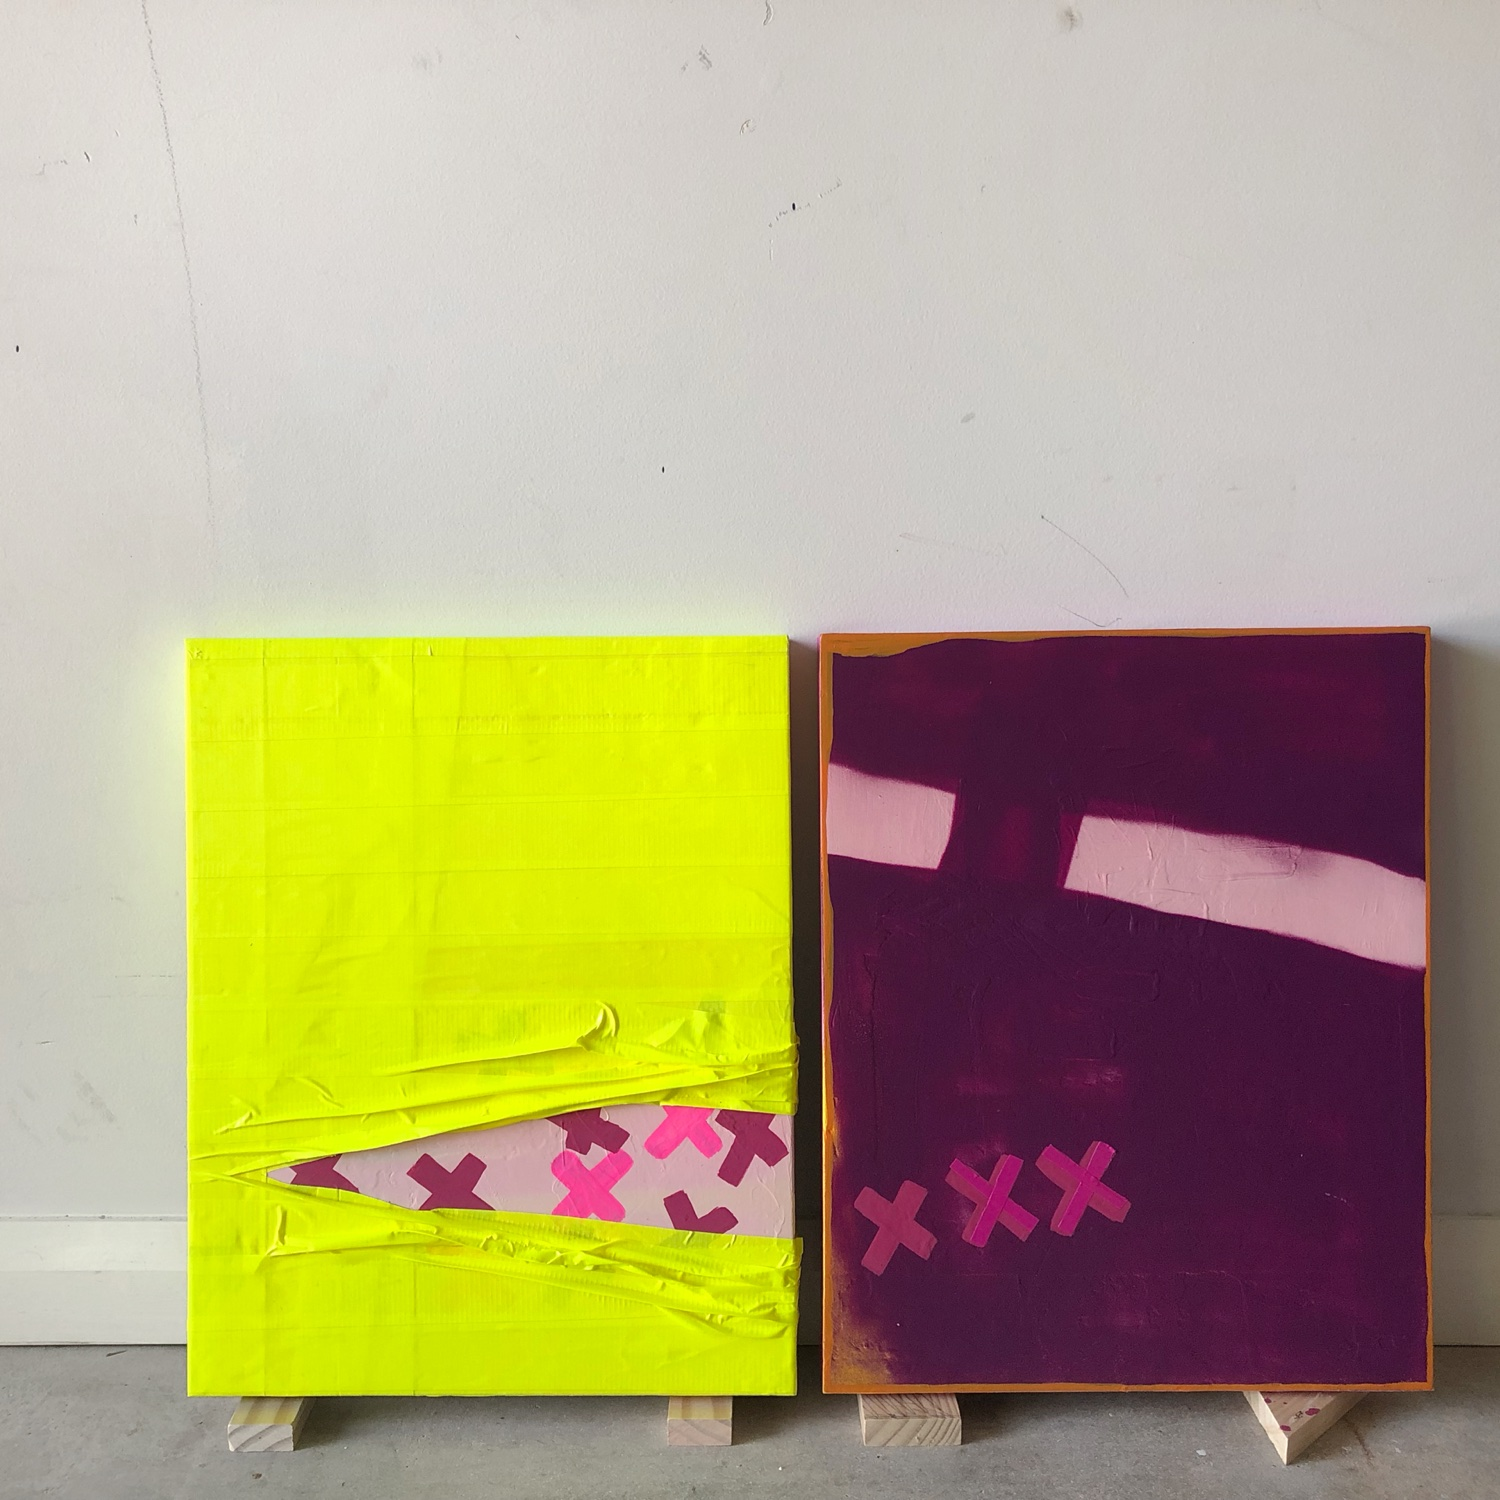 Yellow and purple abstract paintings against white wall